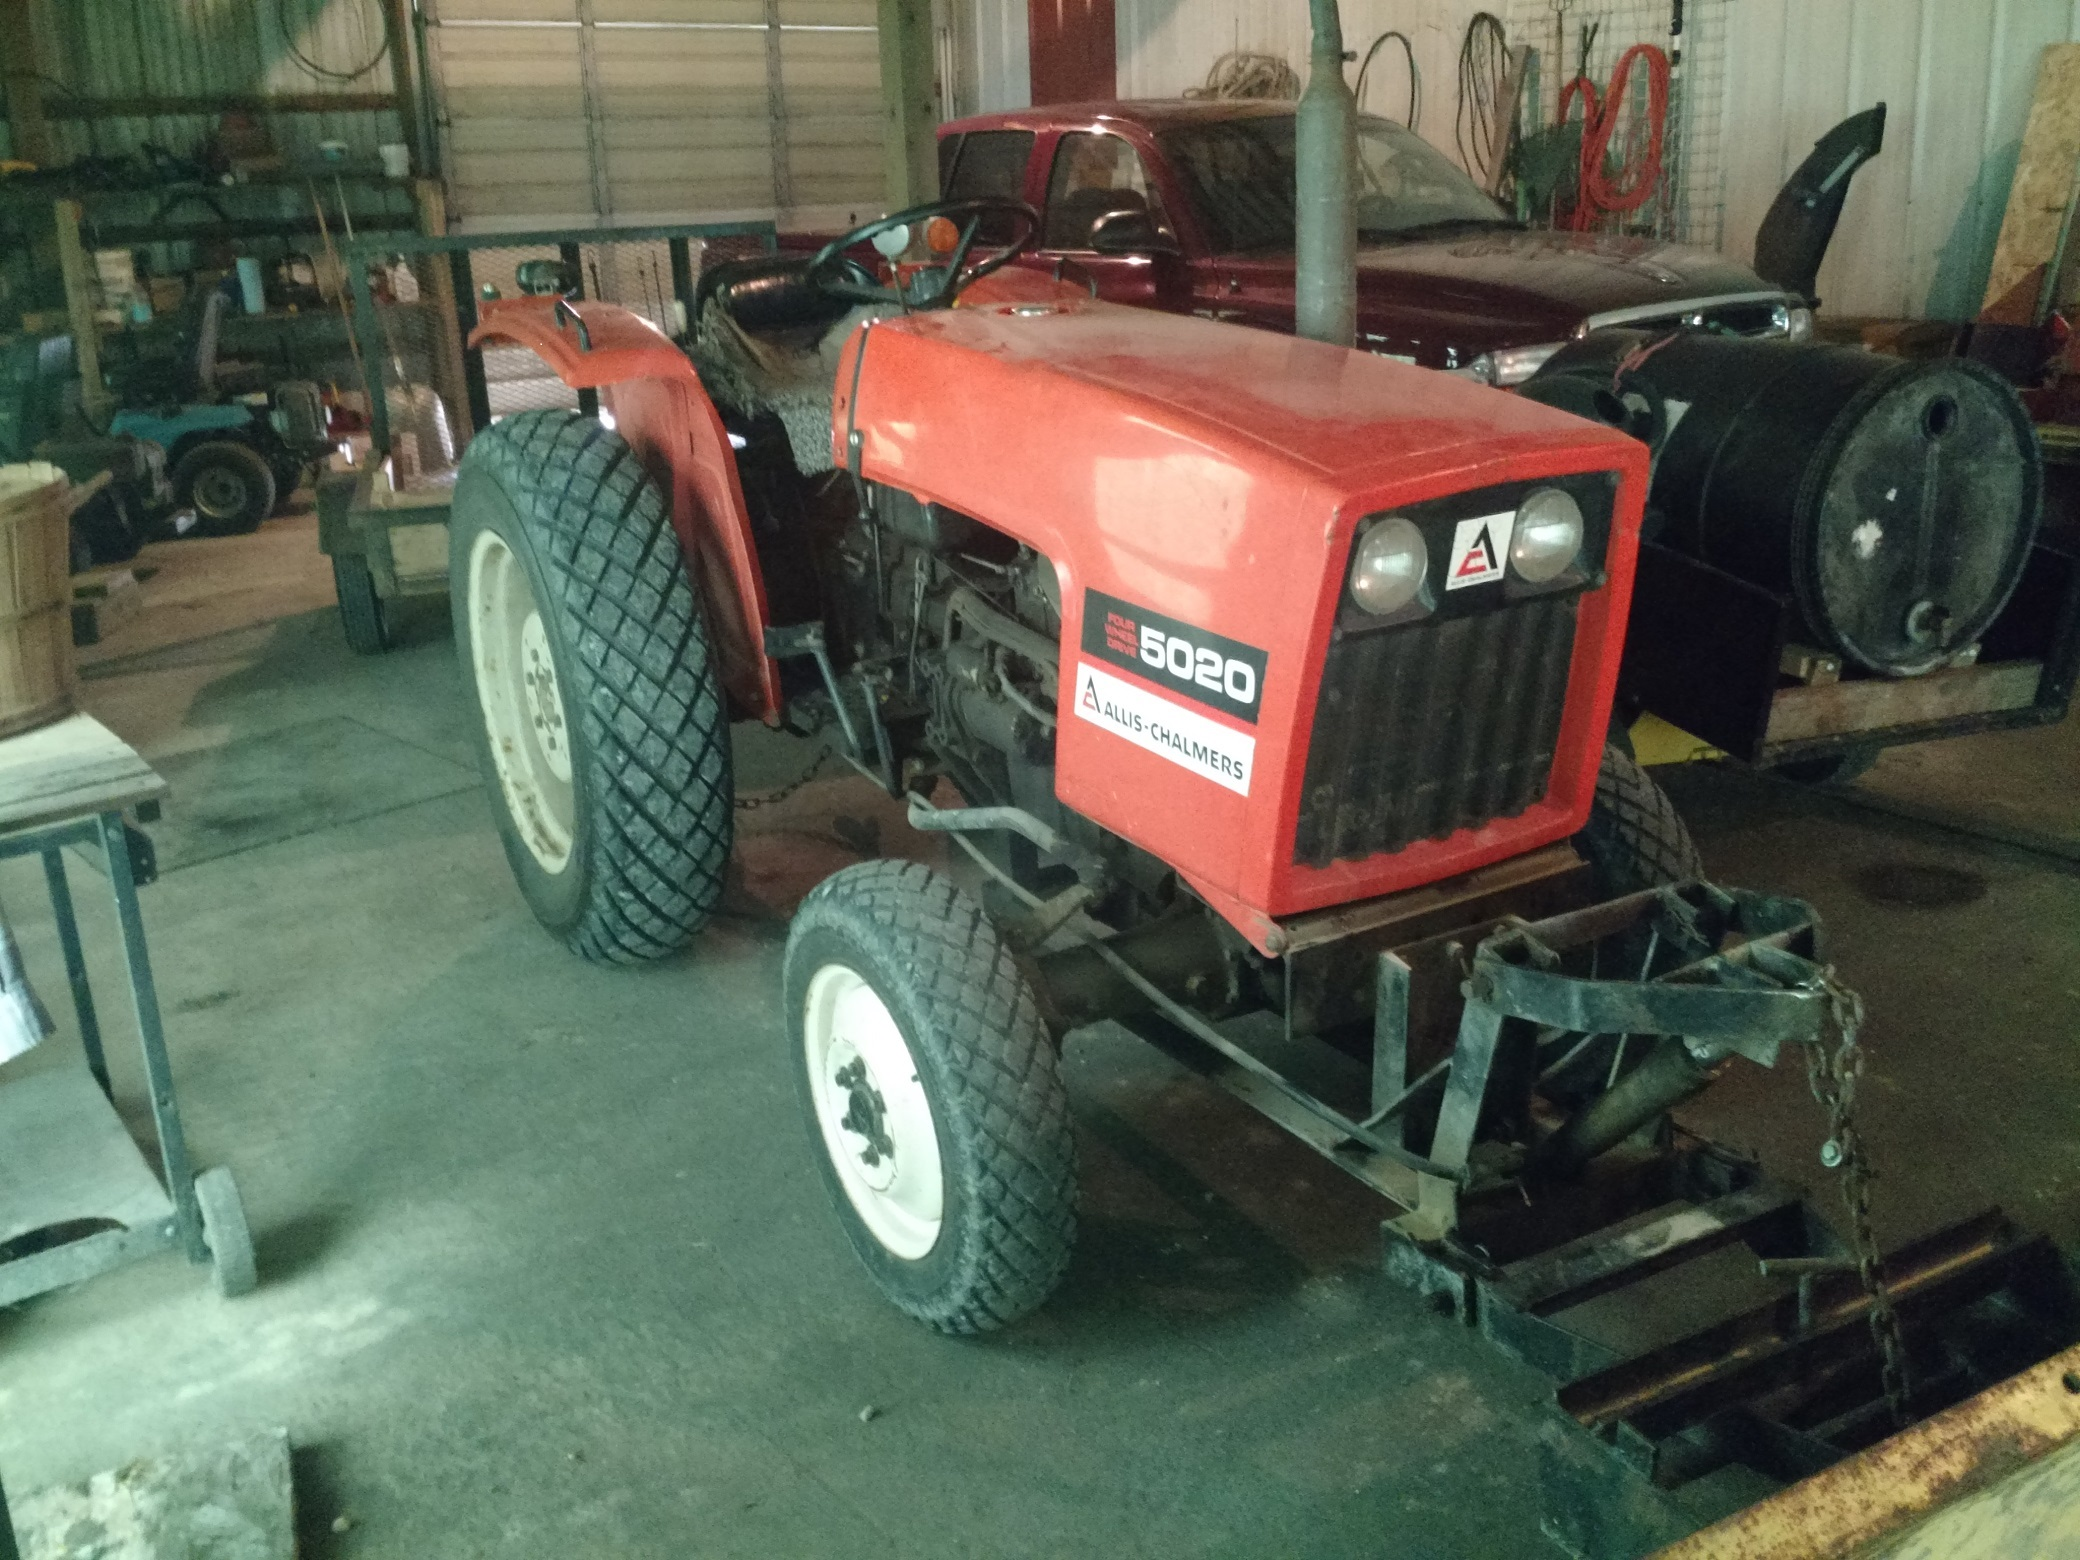 5020 with serial number 1 AllisChalmers Forum